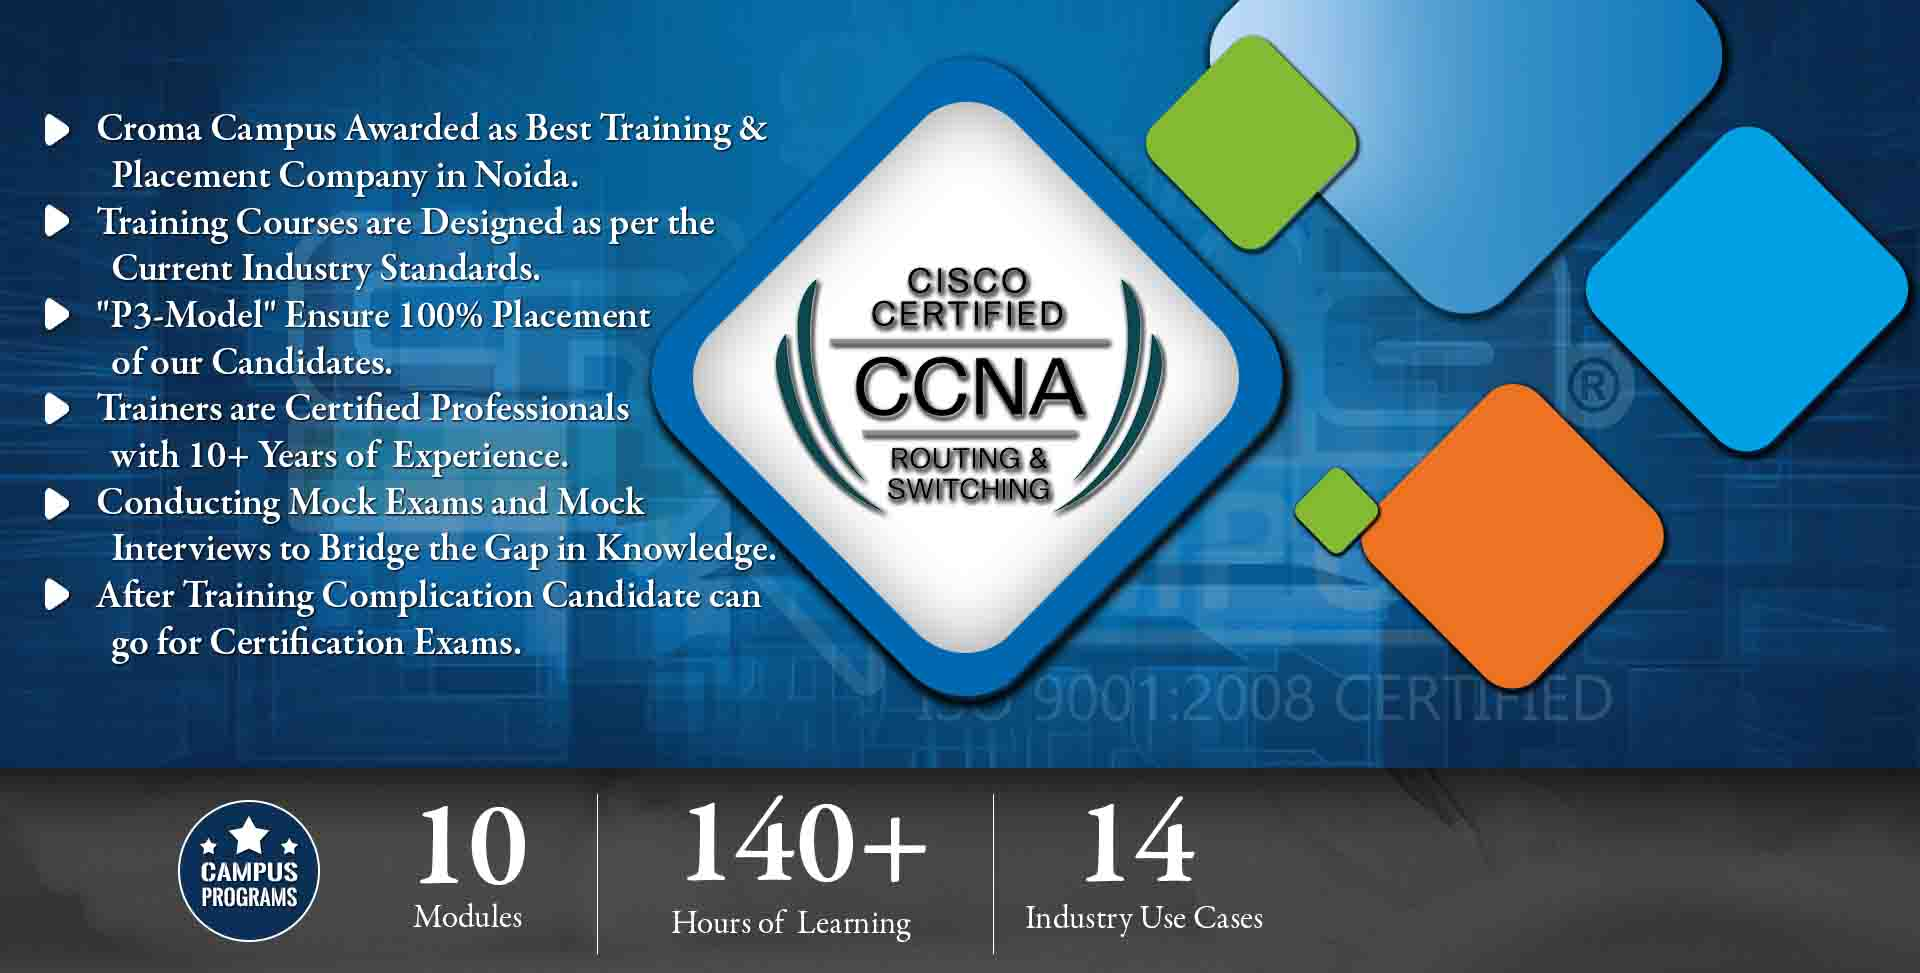 CCNA Training in Gurgaon- Croma Campus